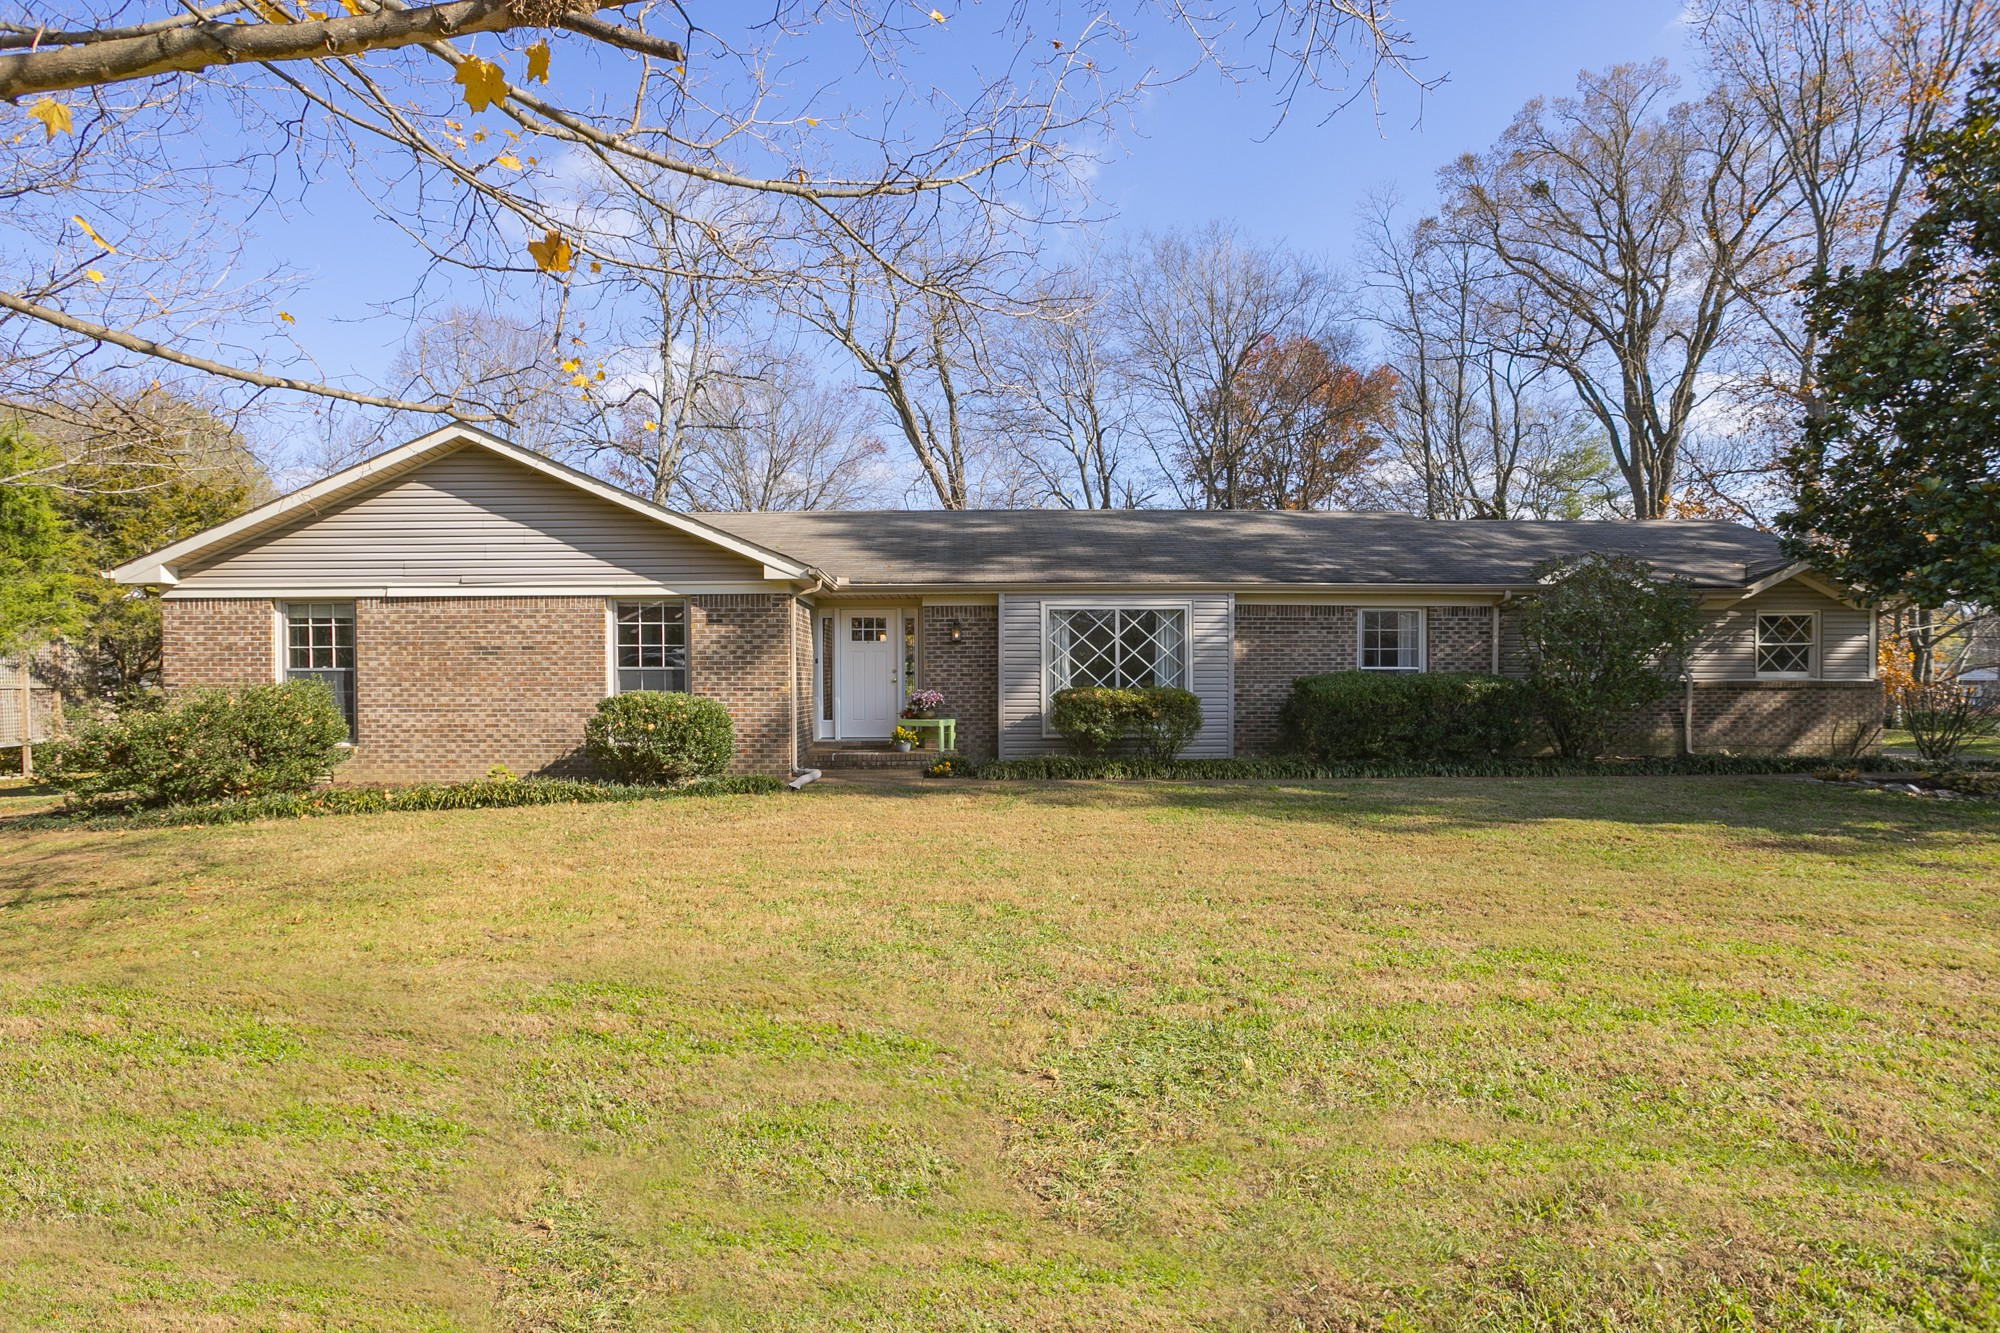 Ranch style home settled on a large lot with beautiful mature trees. Quiet neighborhood minutes from Cool Springs and Downtown Franklin. Newer HVAC and carpet. No HOA. This one won't last long!